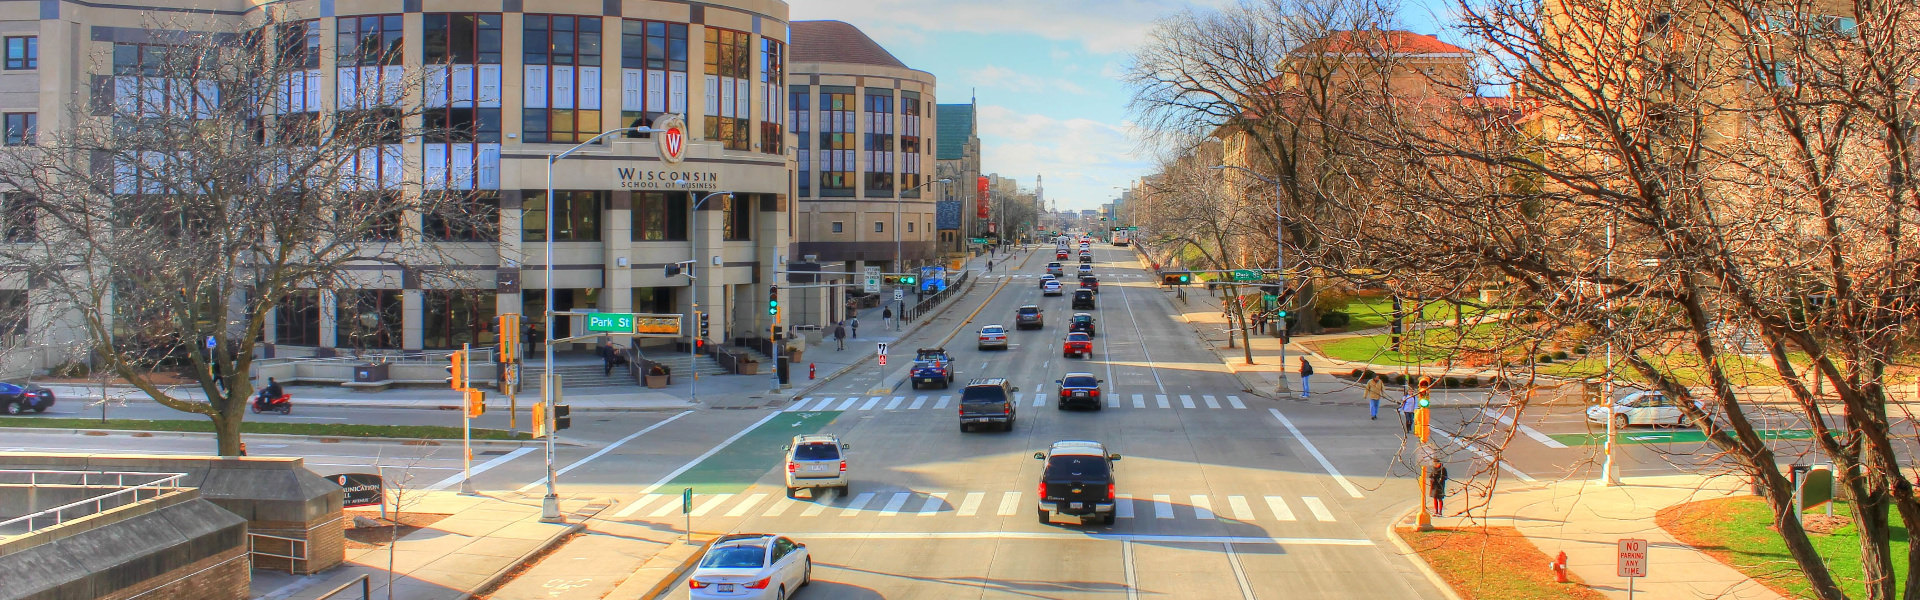 University Avenue on the UW-Madison campus in Madison, WI